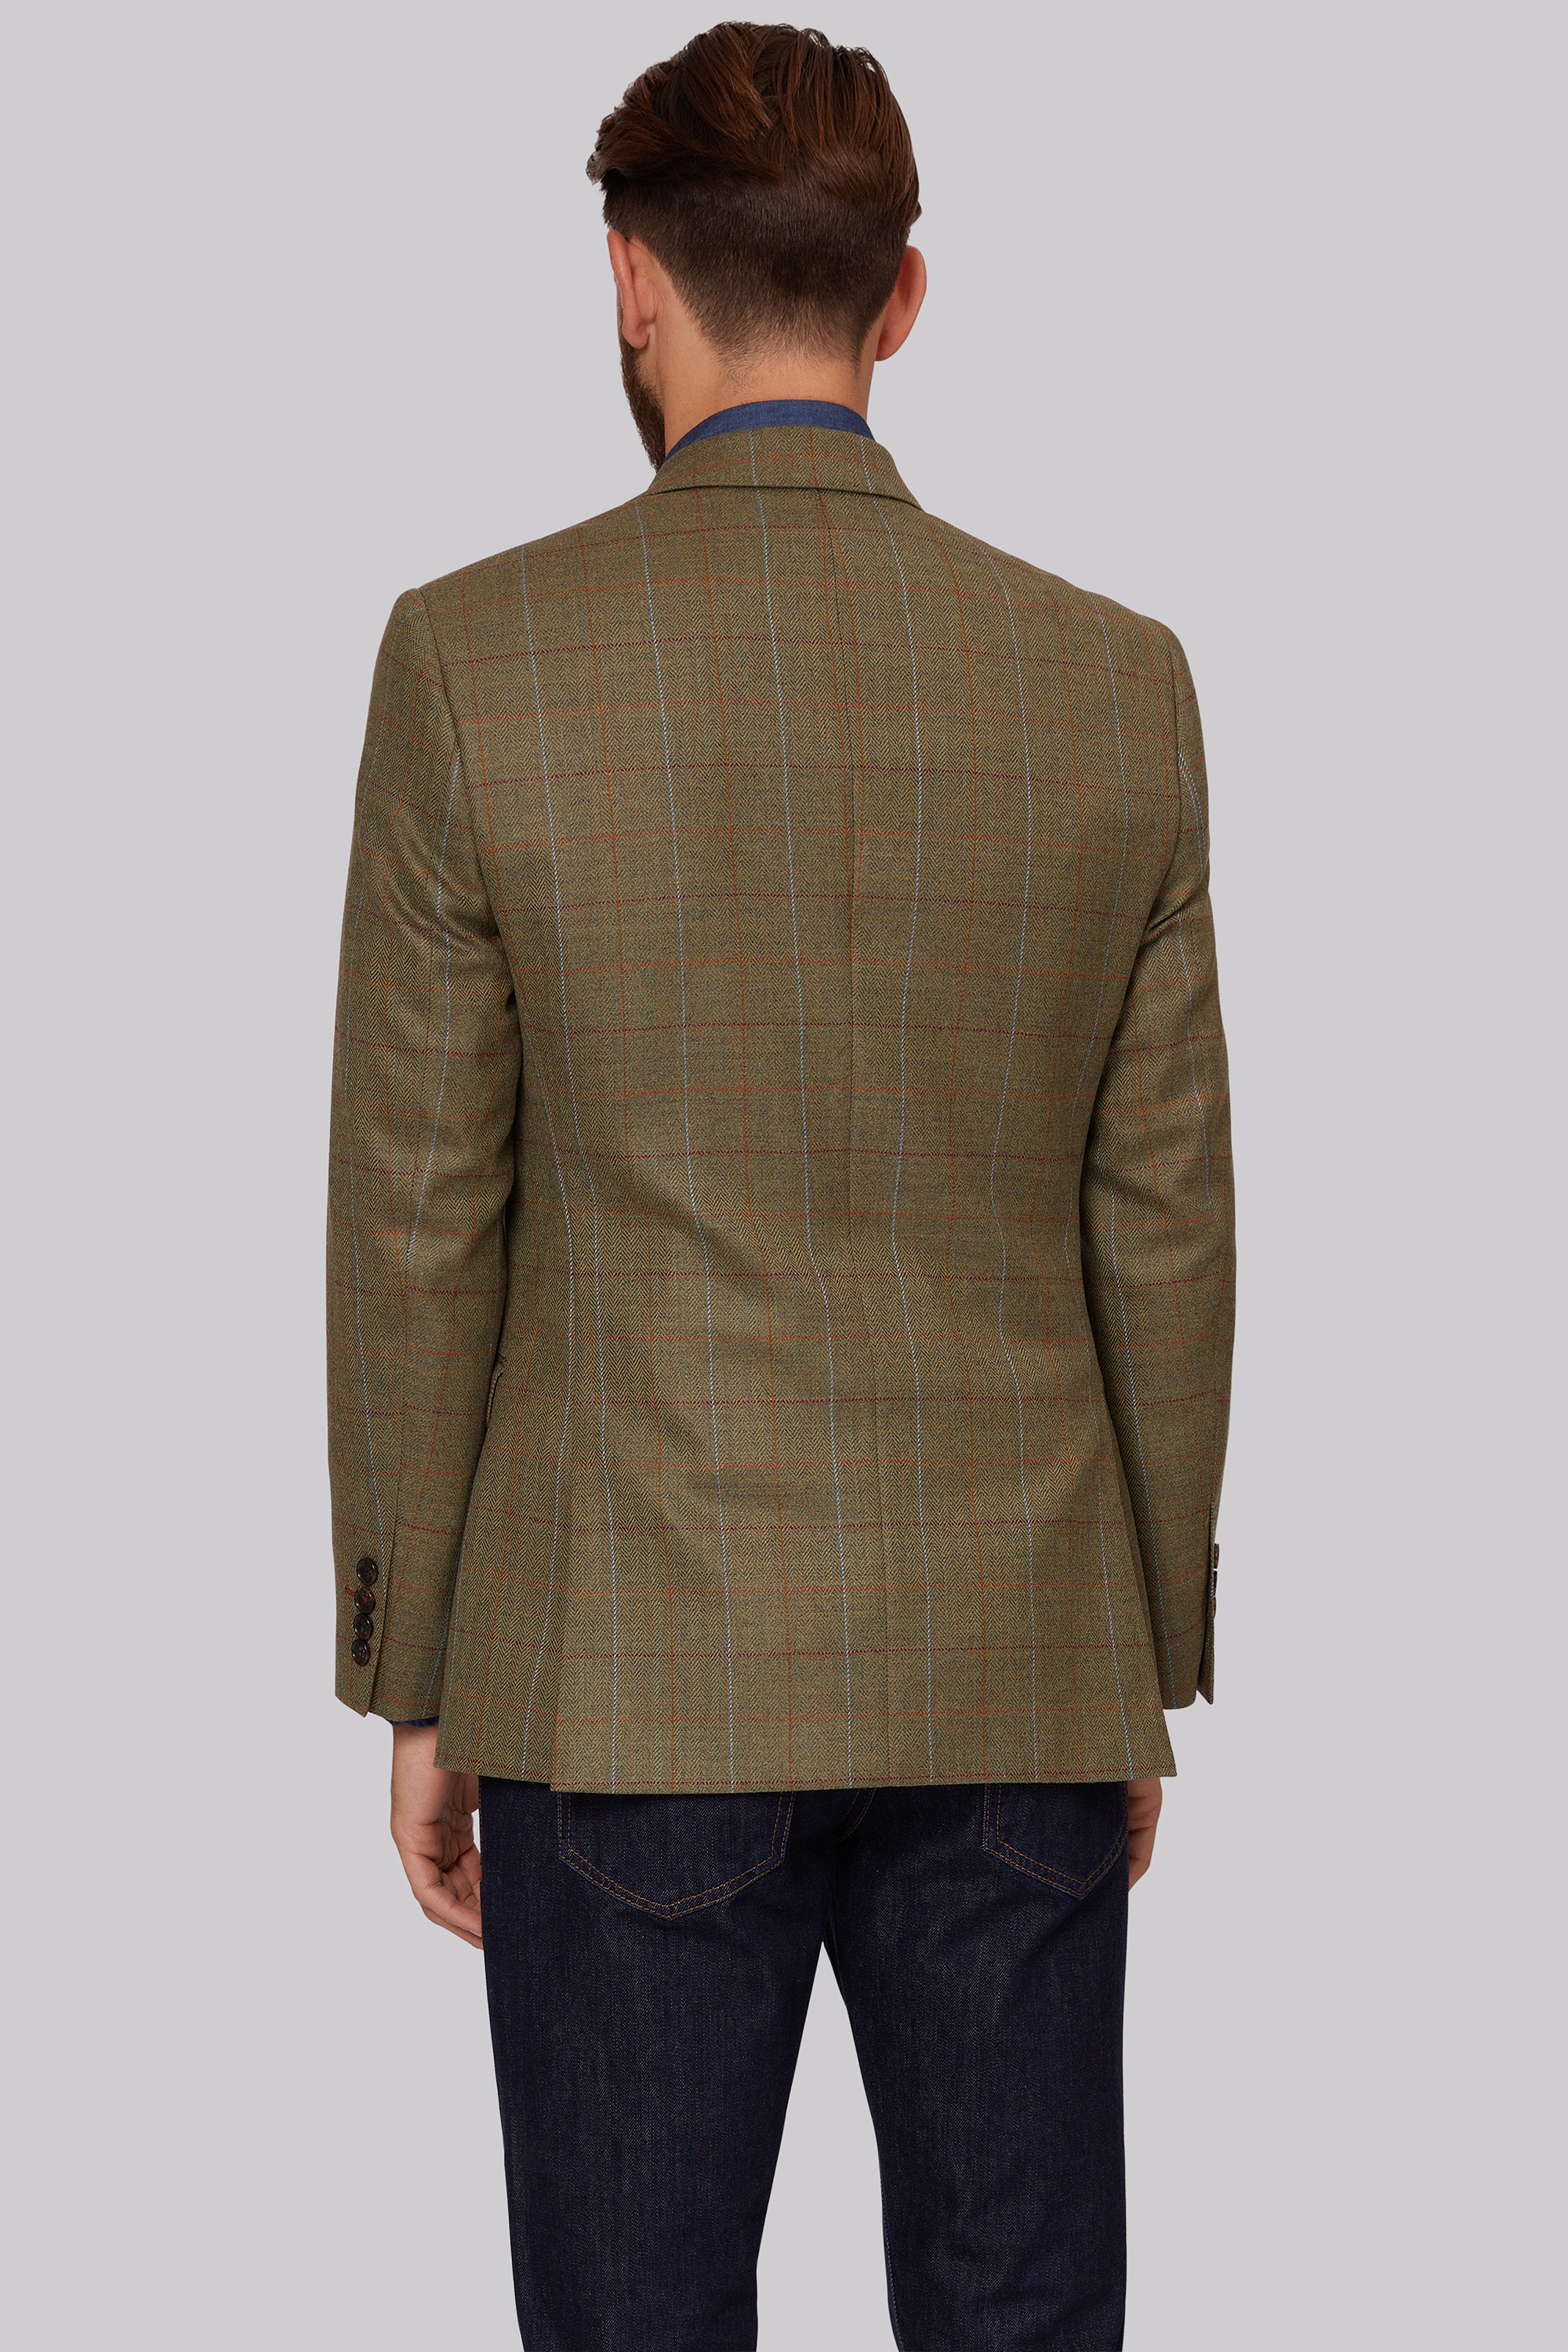 1851 Tailored Fit Green Multi Check Jacket